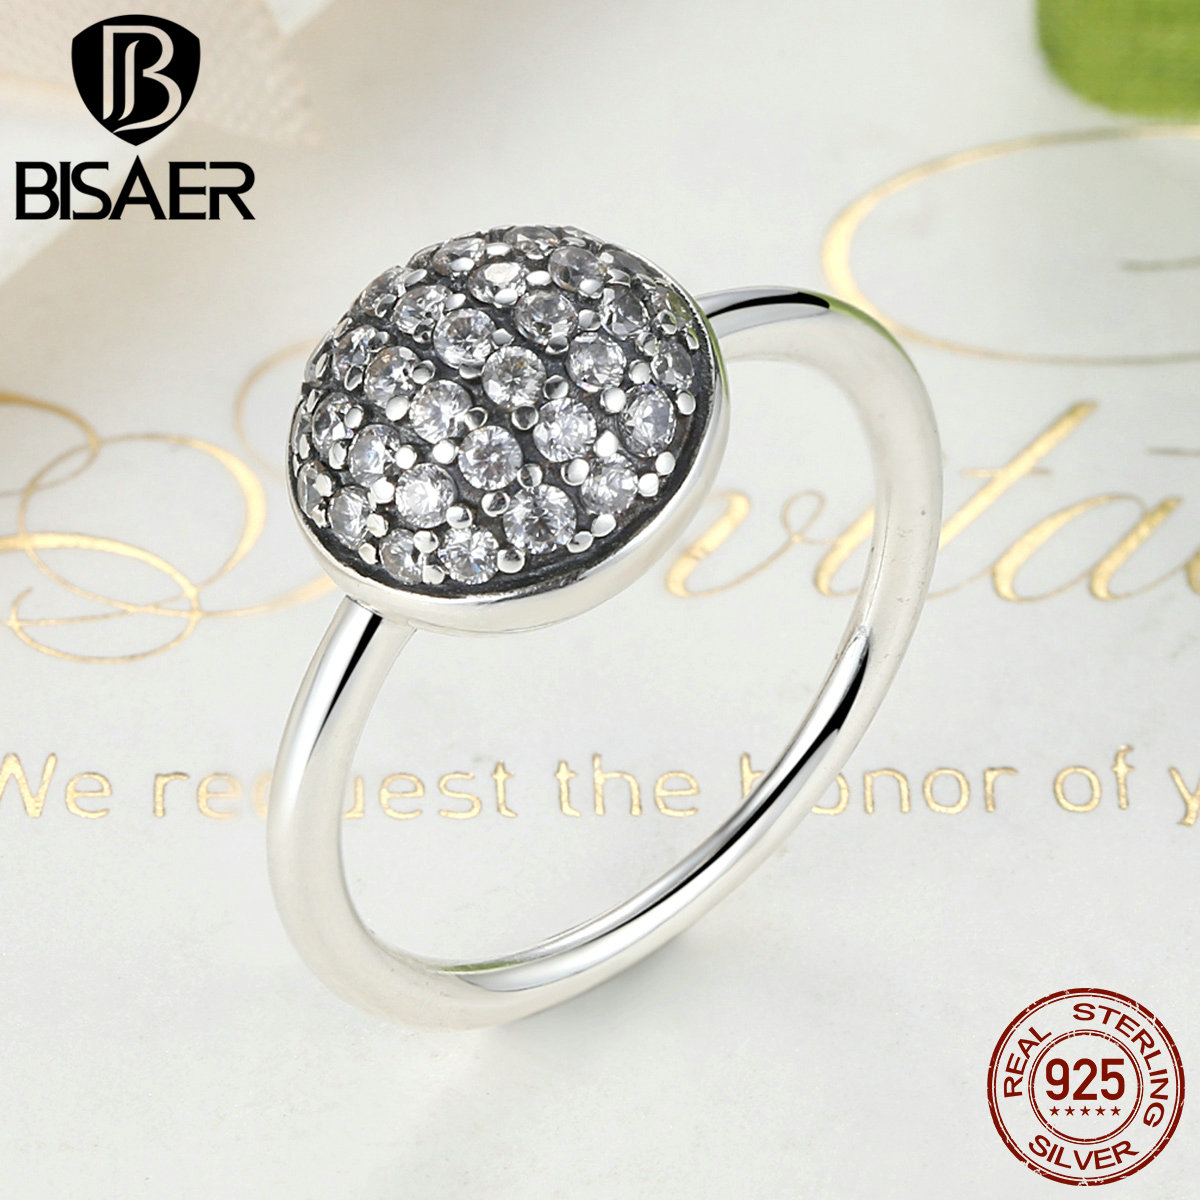 BISAER Authentic 925 Sterling Silver Female Dazzling Droplet, Clear CZ Finger Rings For Women Wedding Band Engagement Jewelry